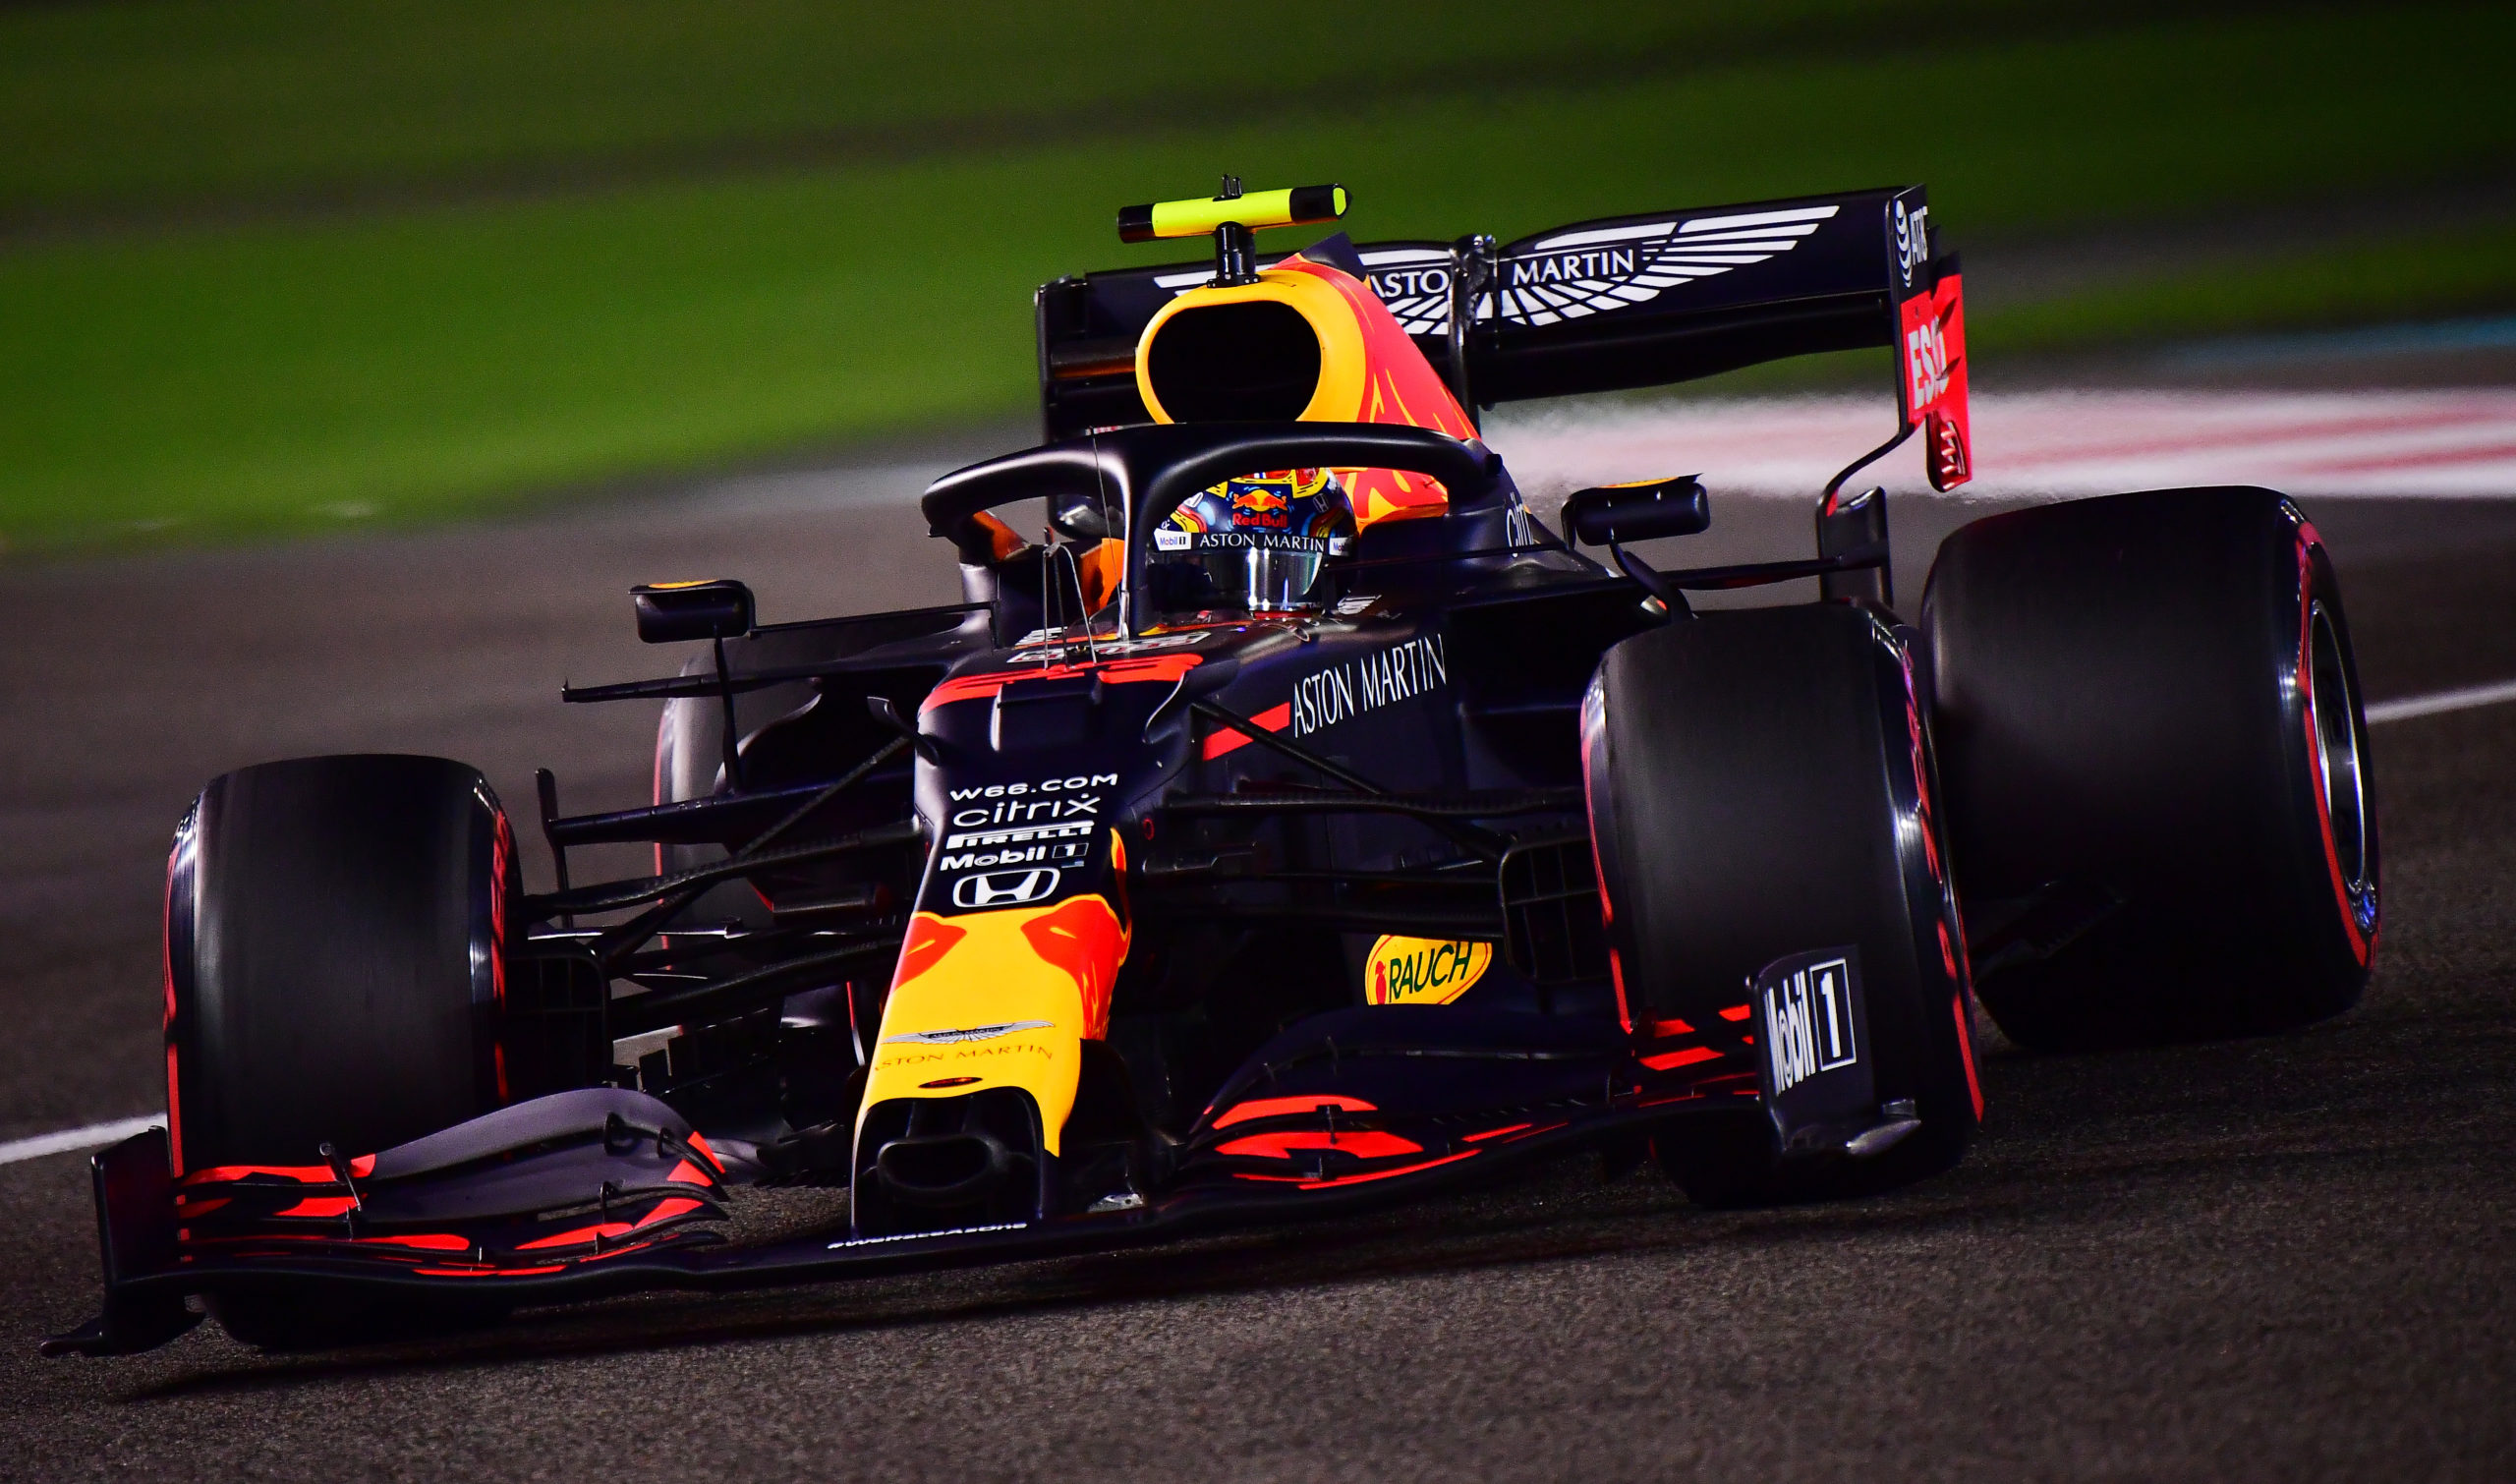 ABU DHABI, UNITED ARAB EMIRATES - DECEMBER 12: Alexander Albon of Thailand driving the (23) Aston Martin Red Bull Racing RB16 on track during qualifying ahead of the F1 Grand Prix of Abu Dhabi at Yas Marina Circuit on December 12, 2020 in Abu Dhabi, United Arab Emirates. (Photo by Giuseppe Cacace - Pool/Getty Images) // Getty Images / Red Bull Content Pool  // SI202012120502 // Usage for editorial use only //